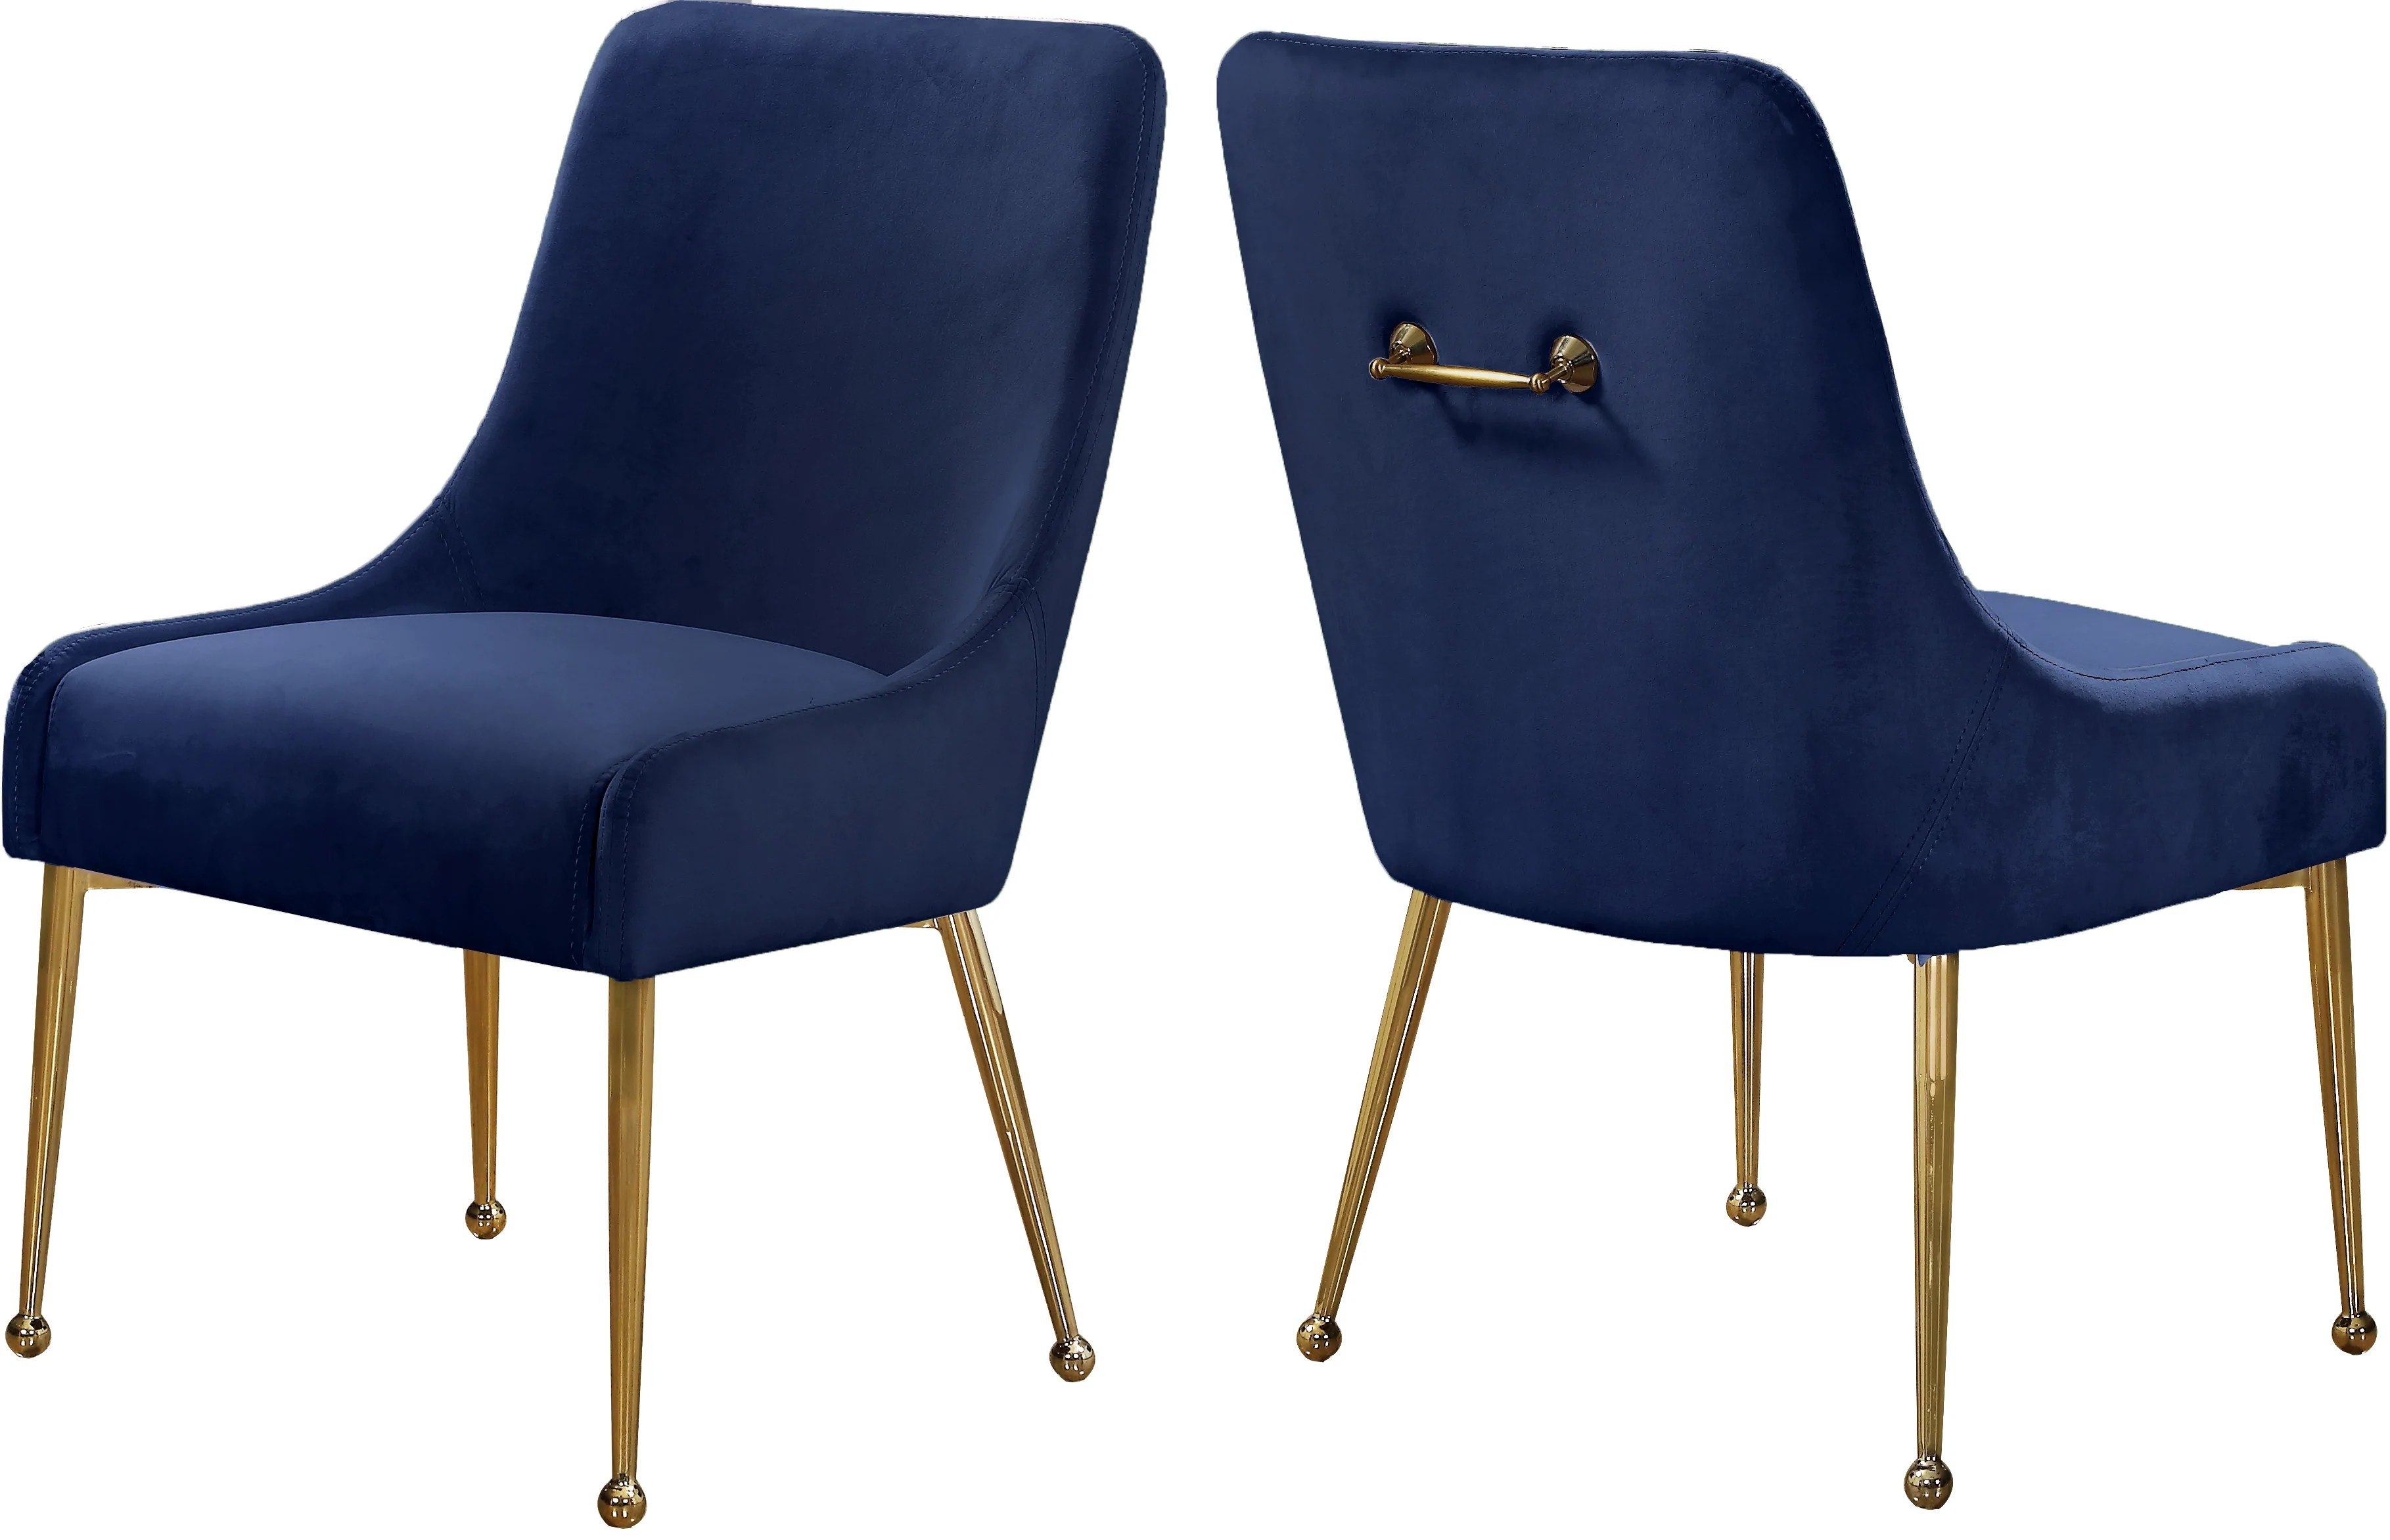 meridian furniture 744navy owen navy velvet dining chair set of 2 647899953330  [ 3637 x 2344 Pixel ]